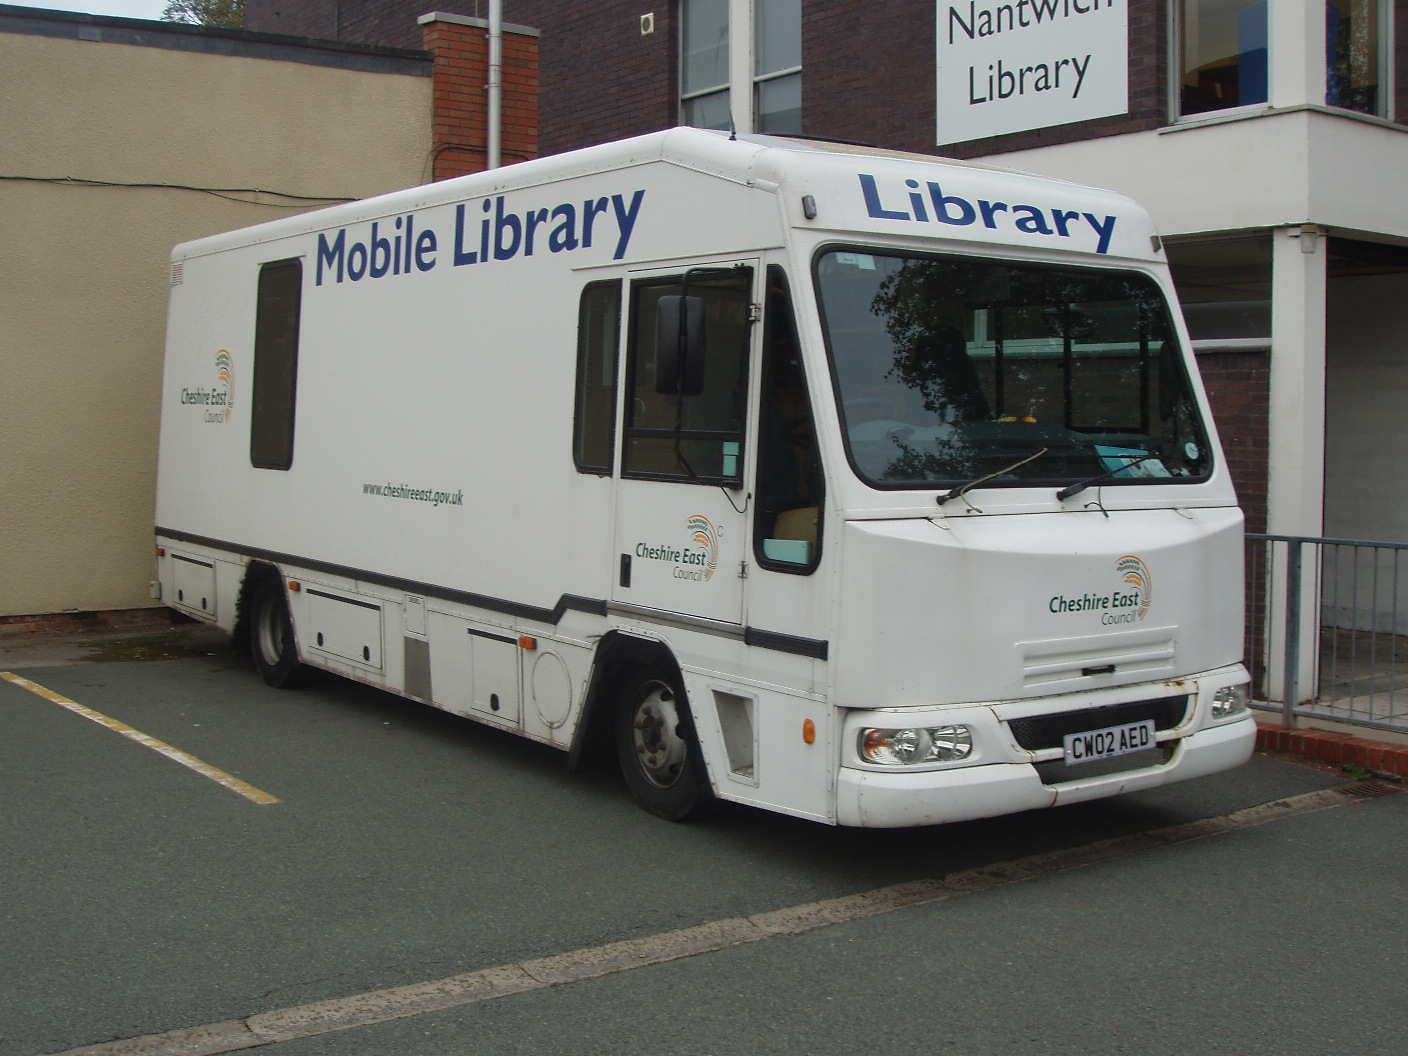 Mobile Library Future – Have Your Say